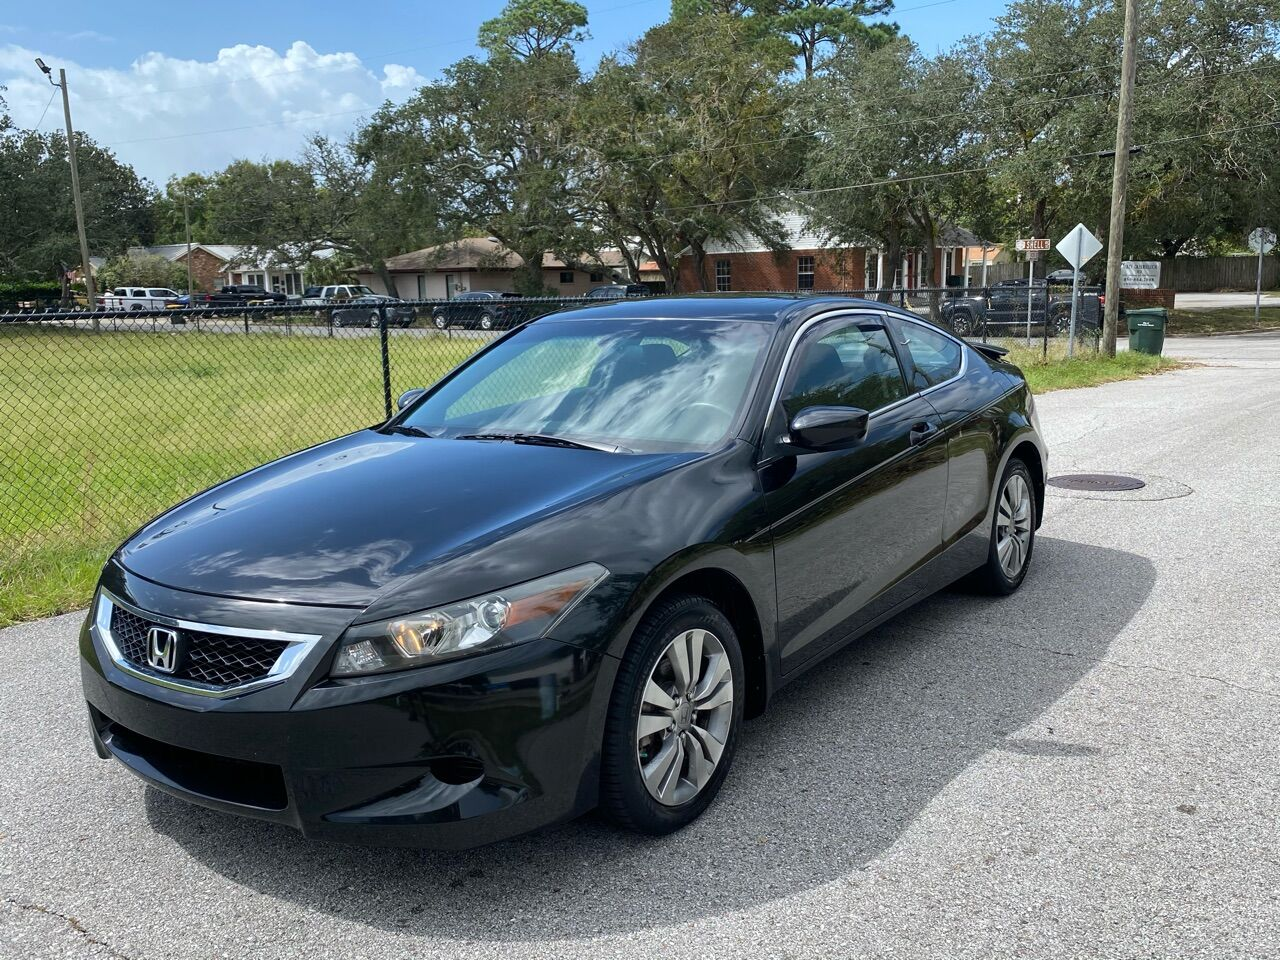 2010 Honda Accord Coupe EX